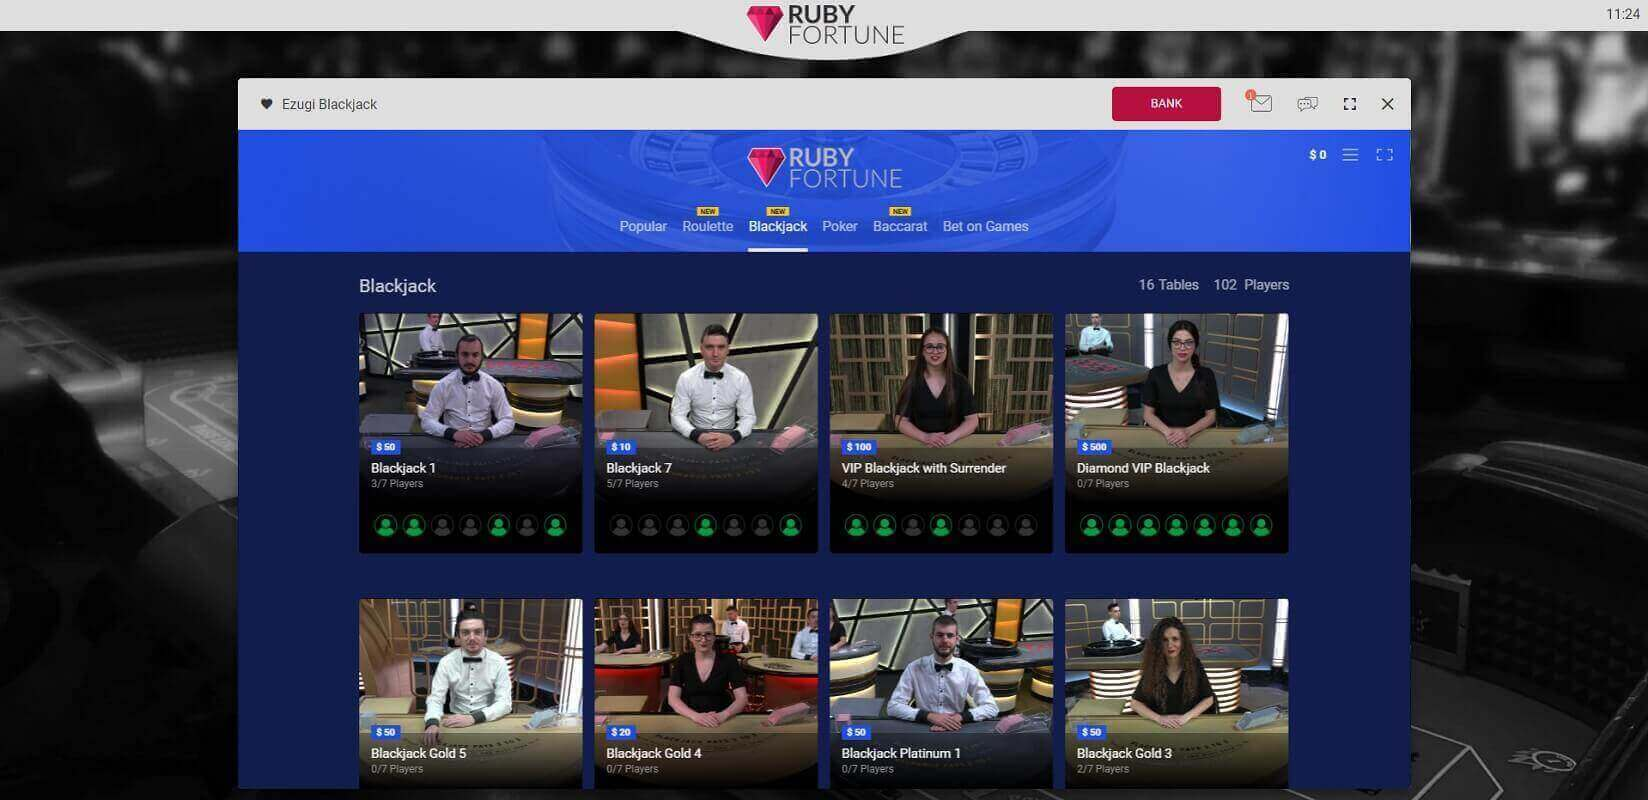 Live dealer games at Ruby Fortune online casino